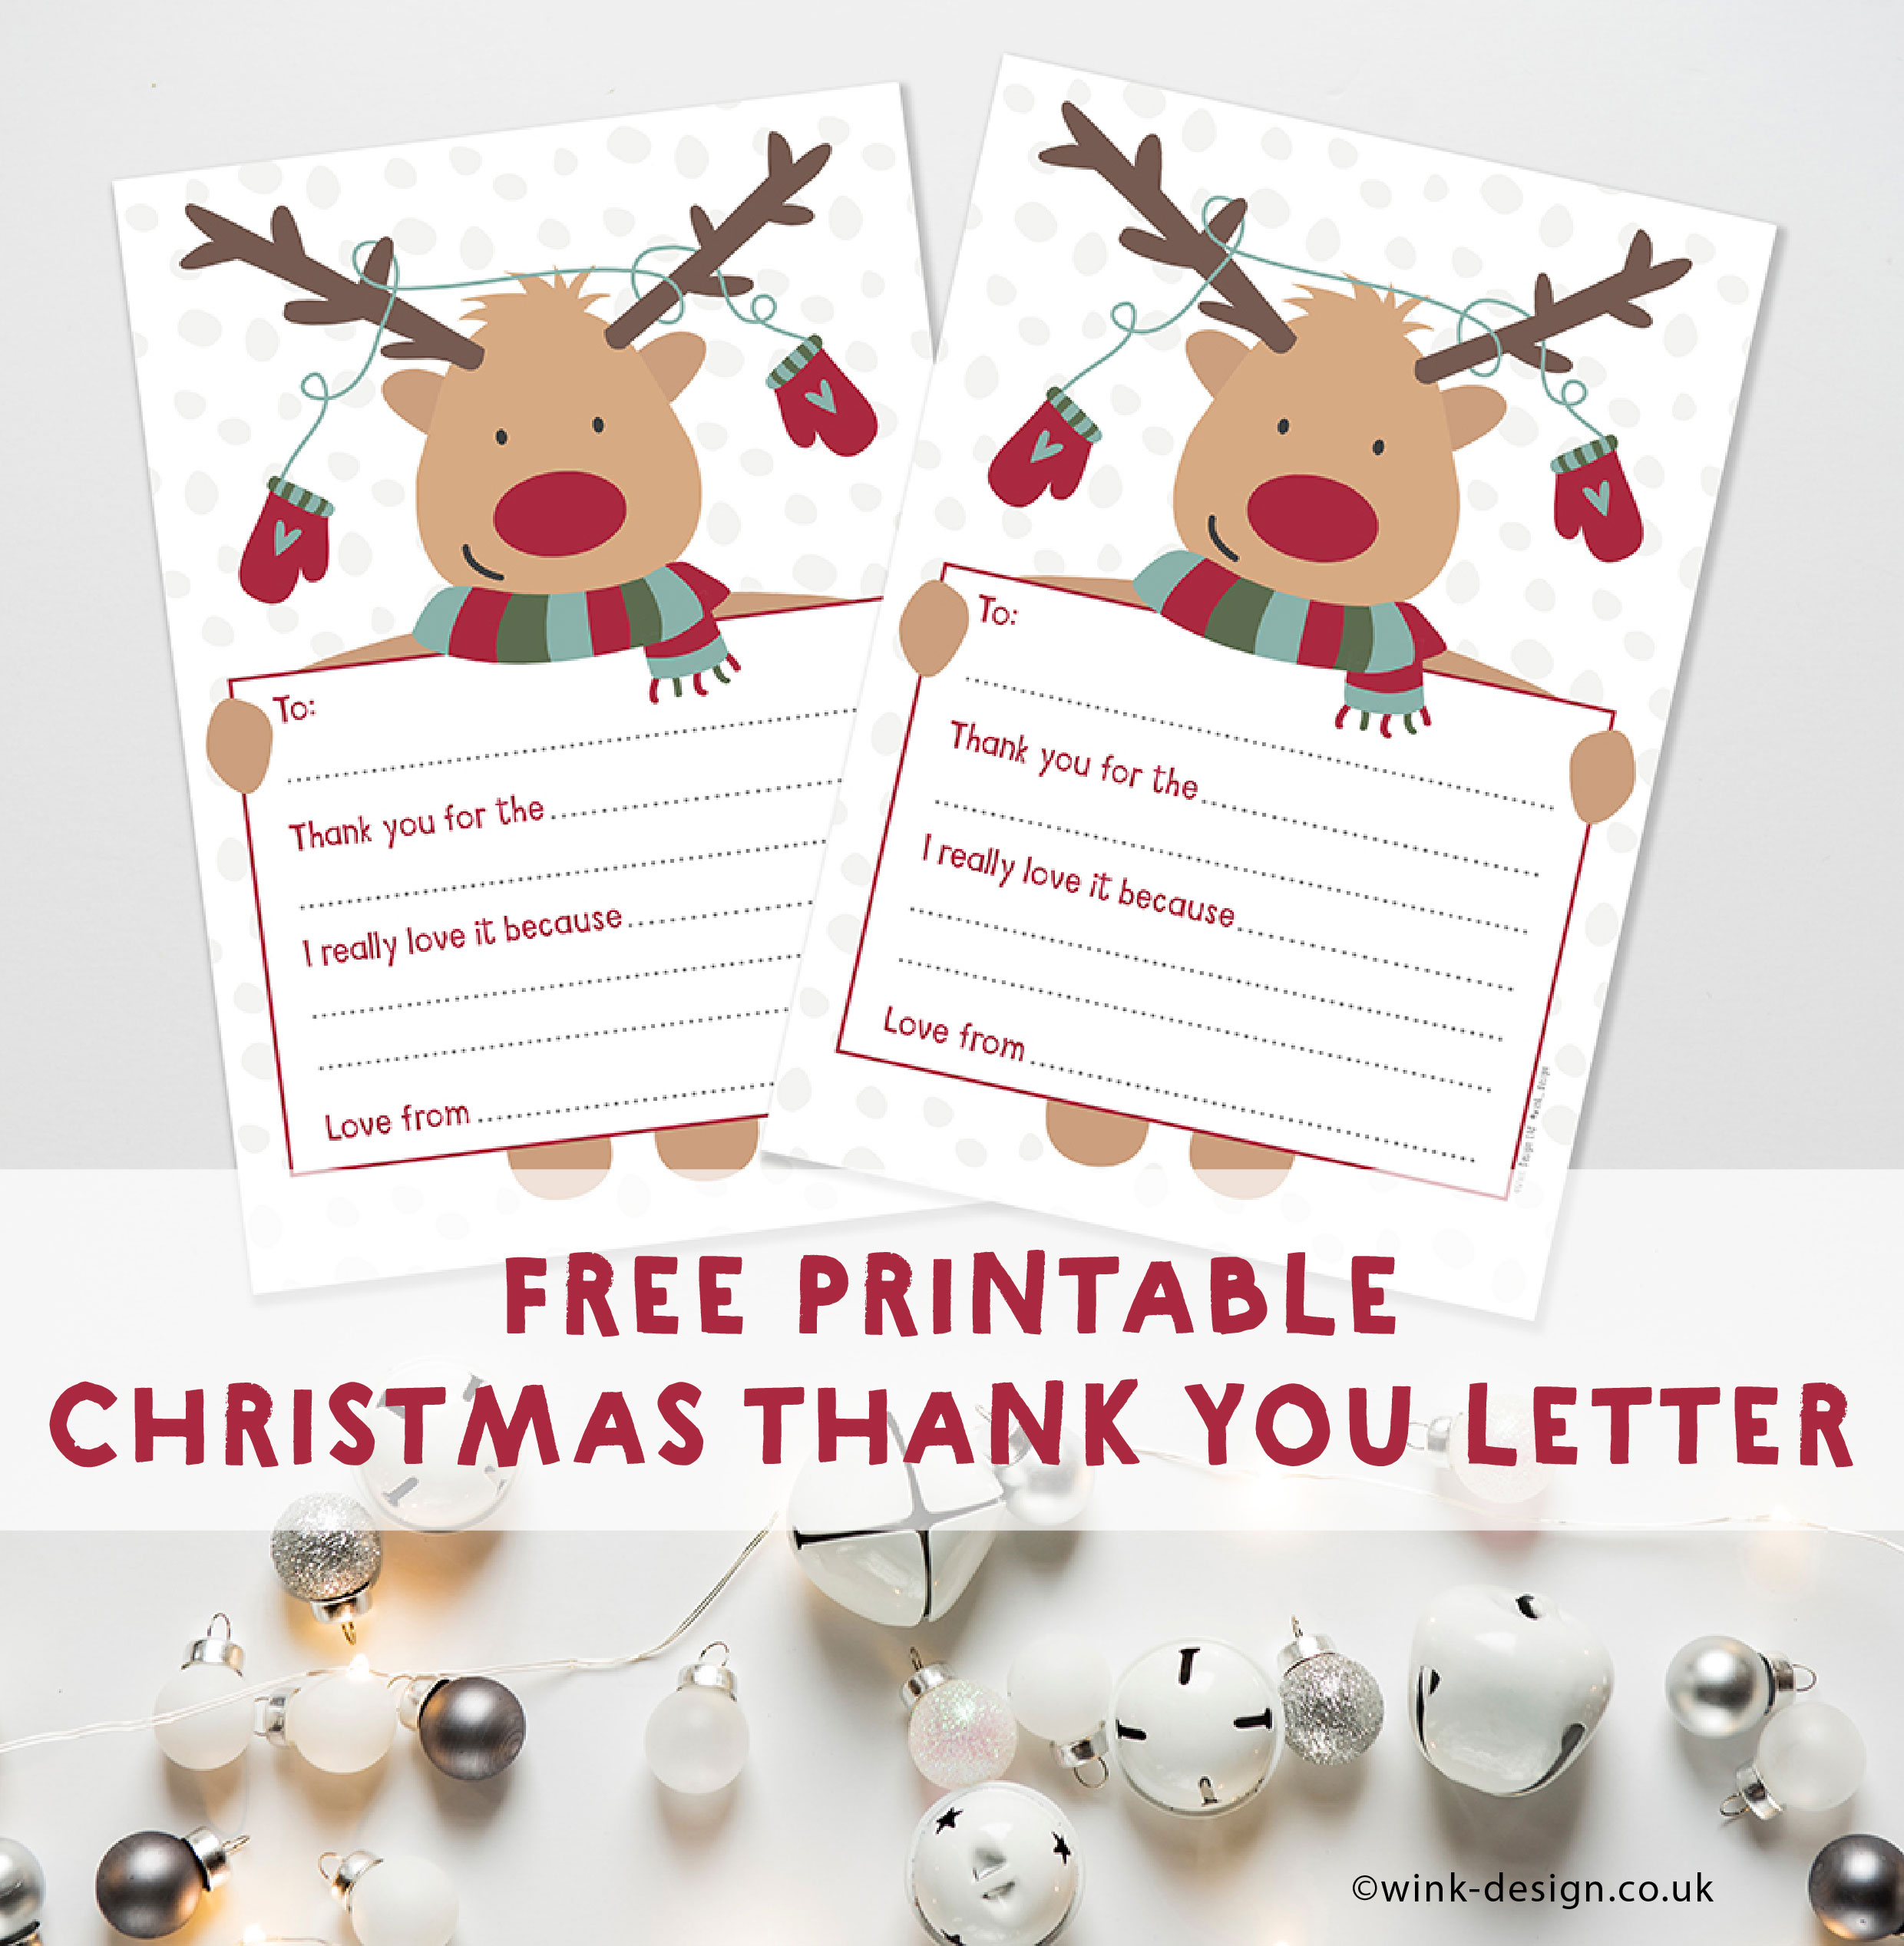 Free Printable Reindeer Thank You Letter by Wink Design